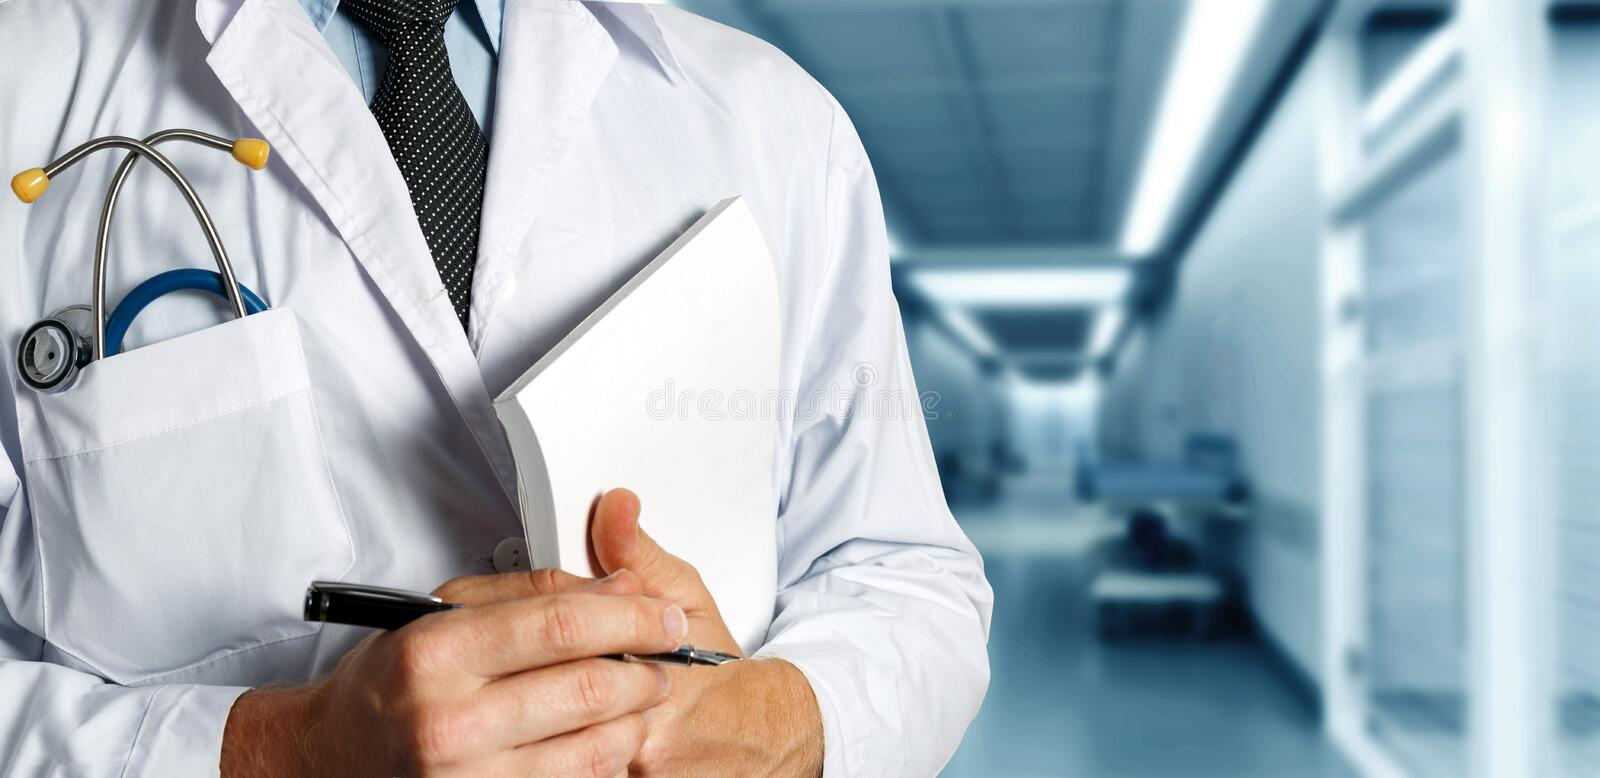 Doctor With Stethoscope Keeps Medical Journal. Healthcare Medicine Concept. Closeup, Doctor In White Coat With Stethoscope Holds Pen And Medical Documents In His royalty free stock photos